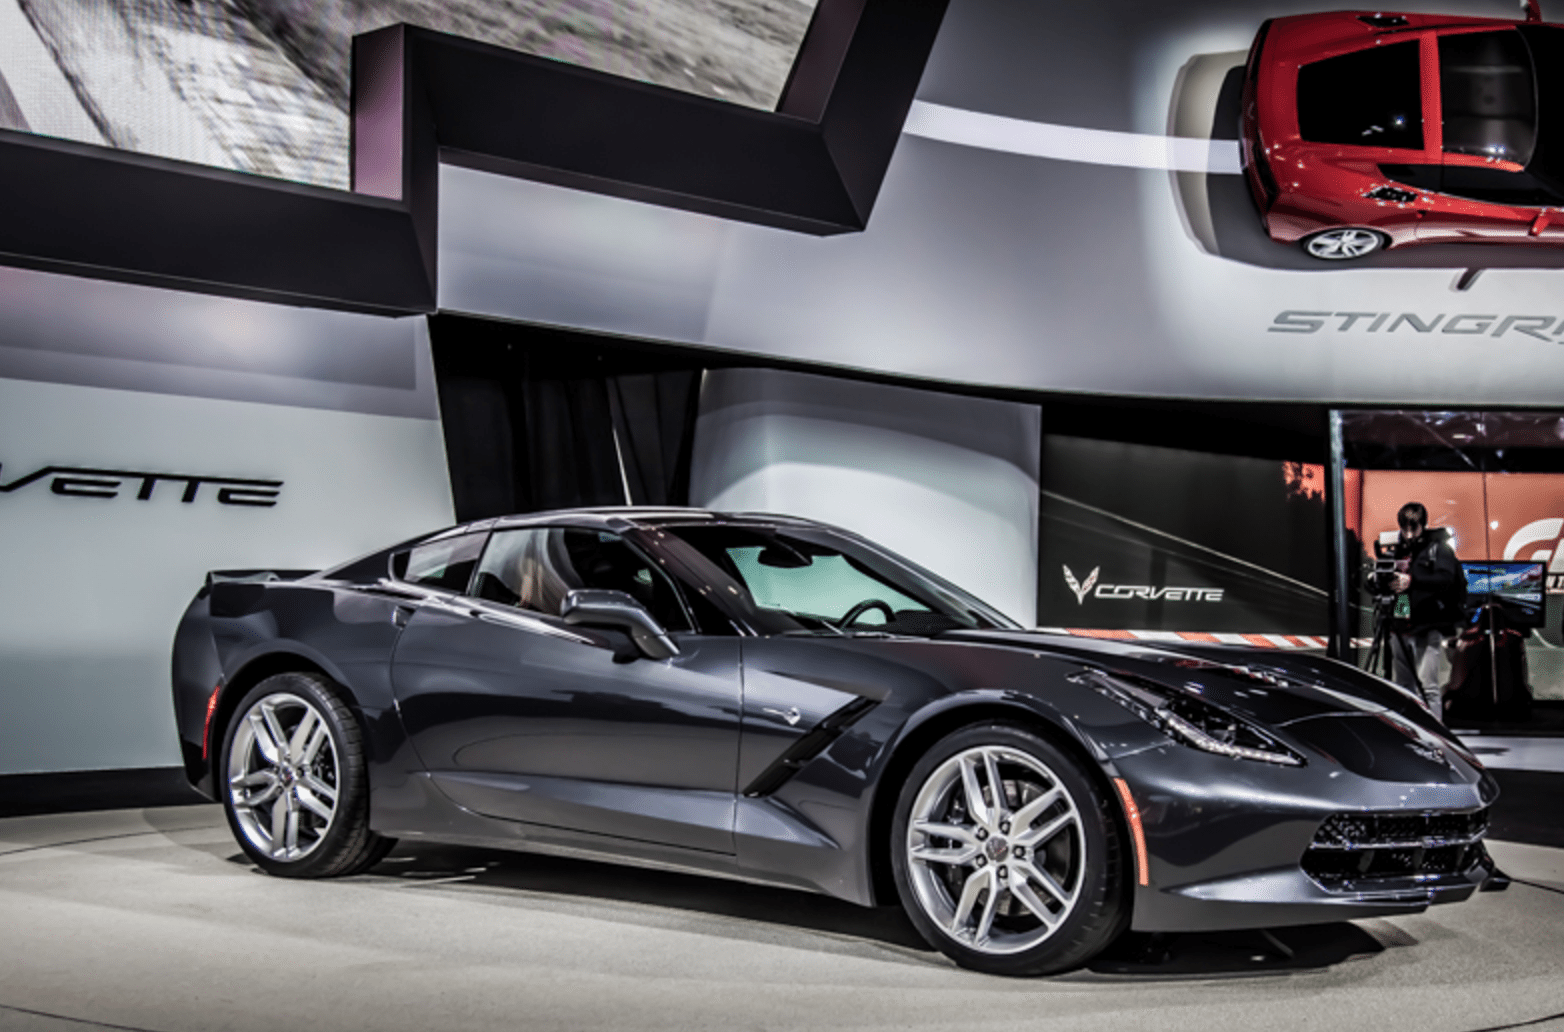 2014 C7 Corvette Stingray Unveiling